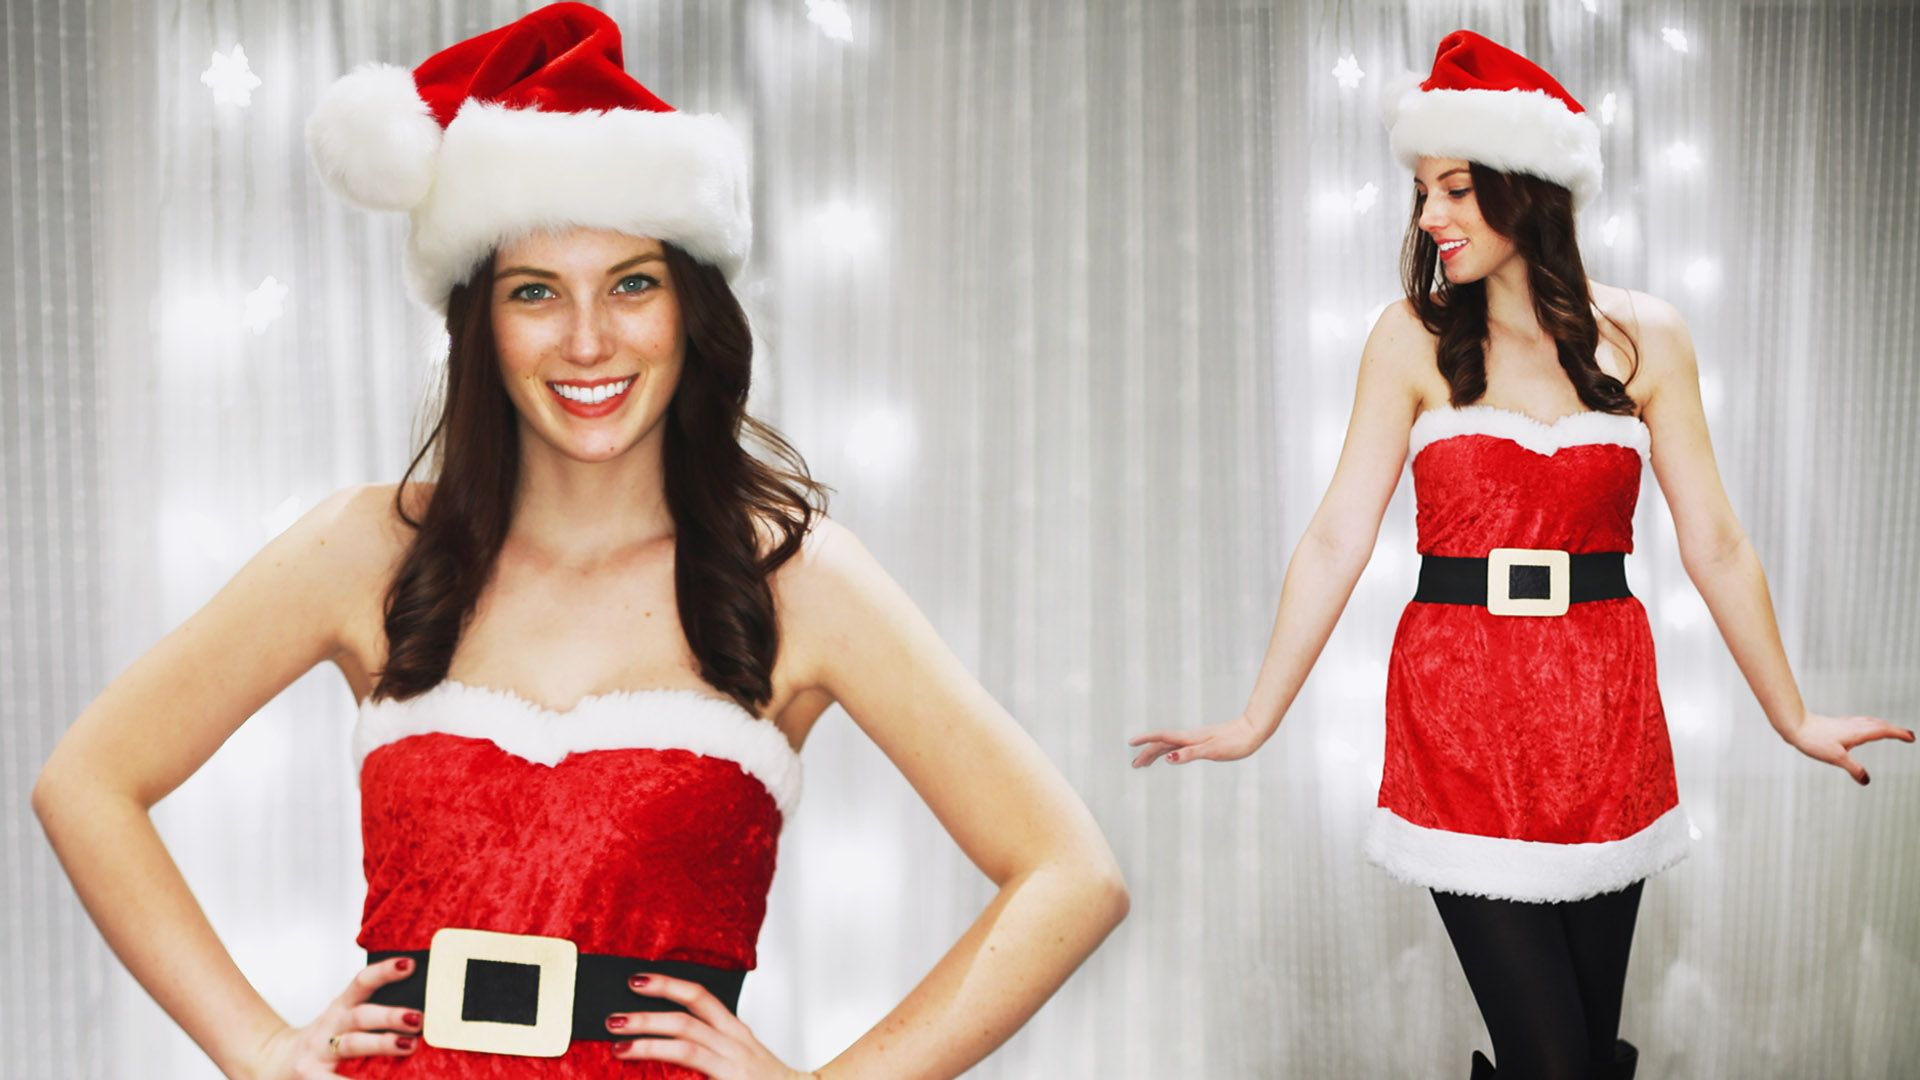 Diy girly santa claus mrs costume perfect for any